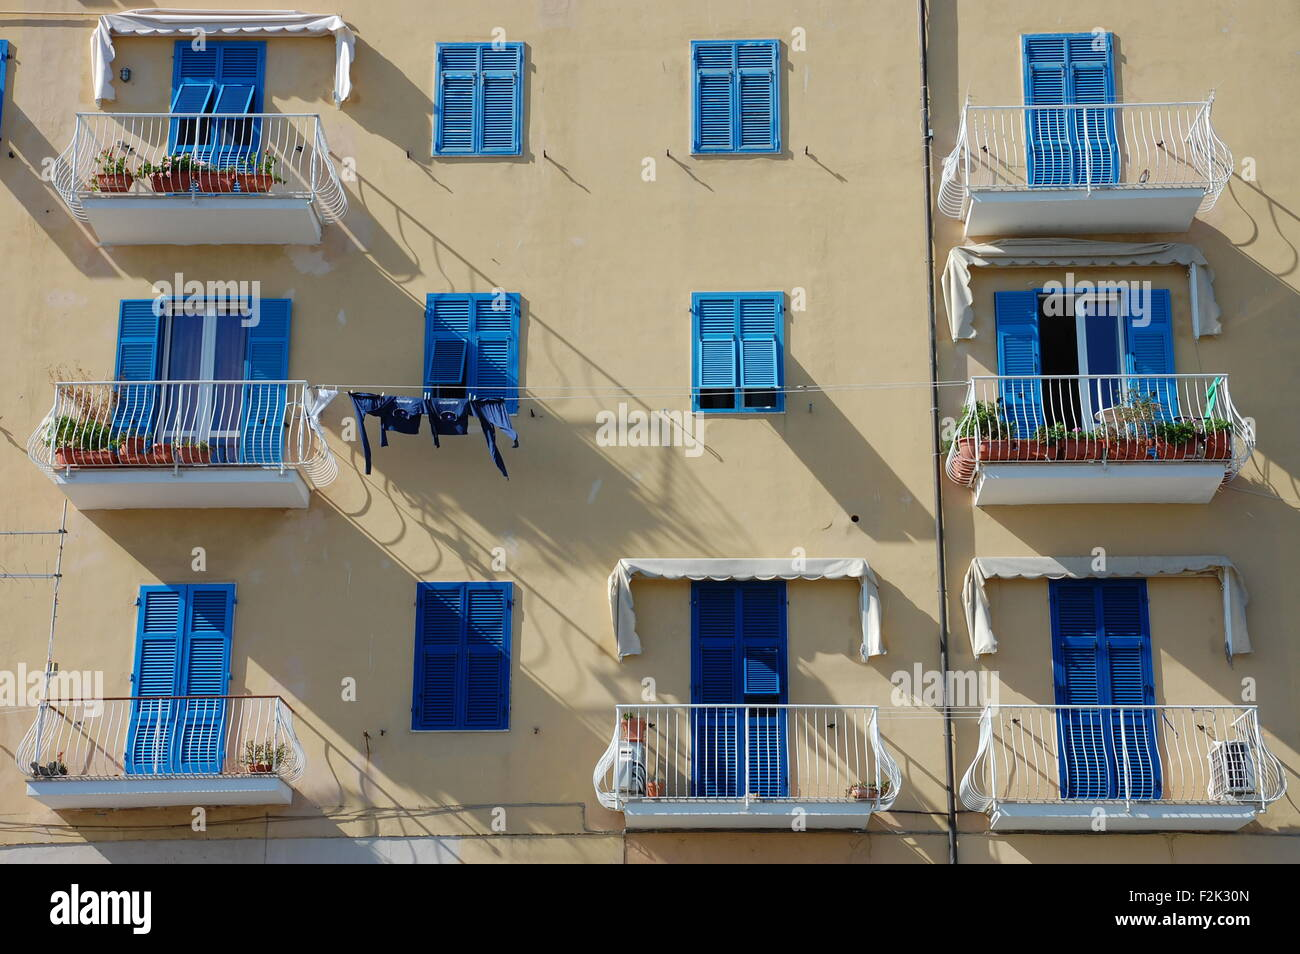 Blue shutters and white balconies on the facade of a house in the town of Porto Santo Stefano, Italy. - Stock Image